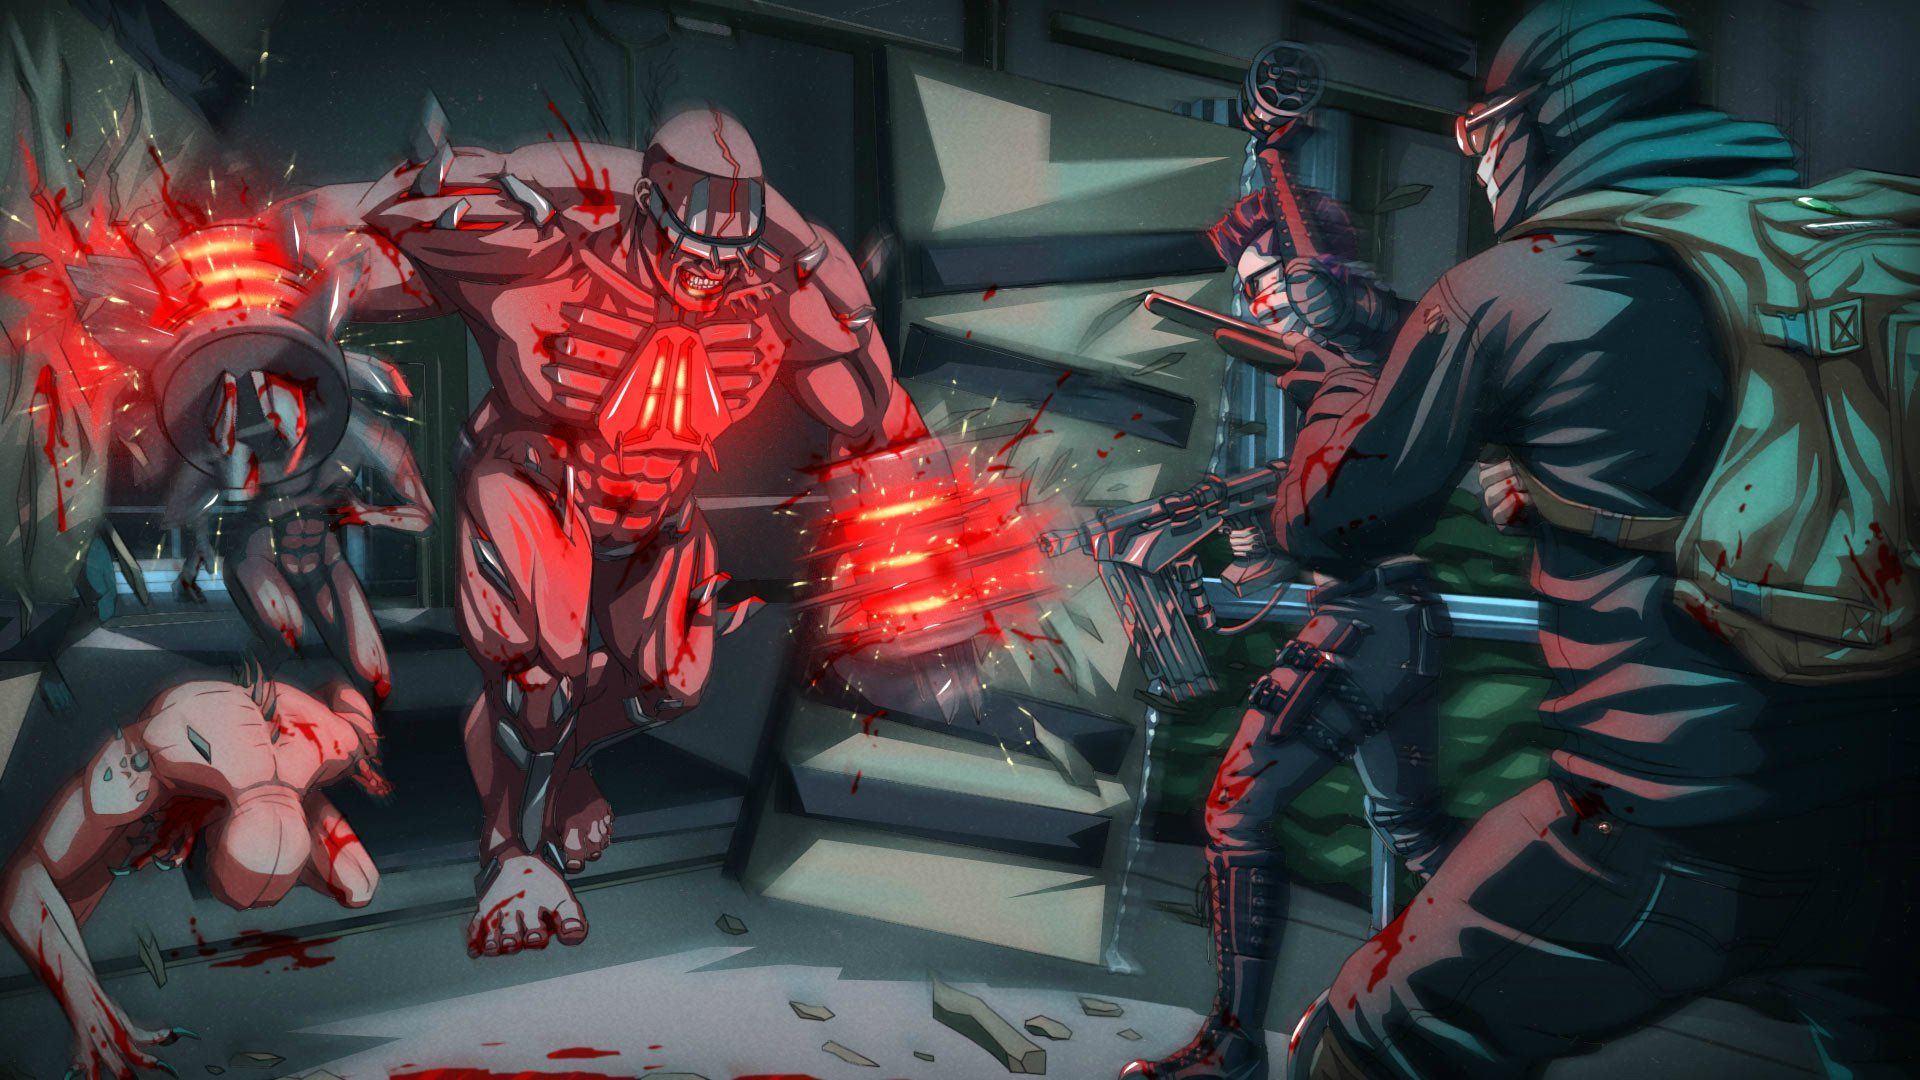 Killing Floor 2 Wallpapers Top Free Killing Floor 2 Backgrounds Wallpaperaccess